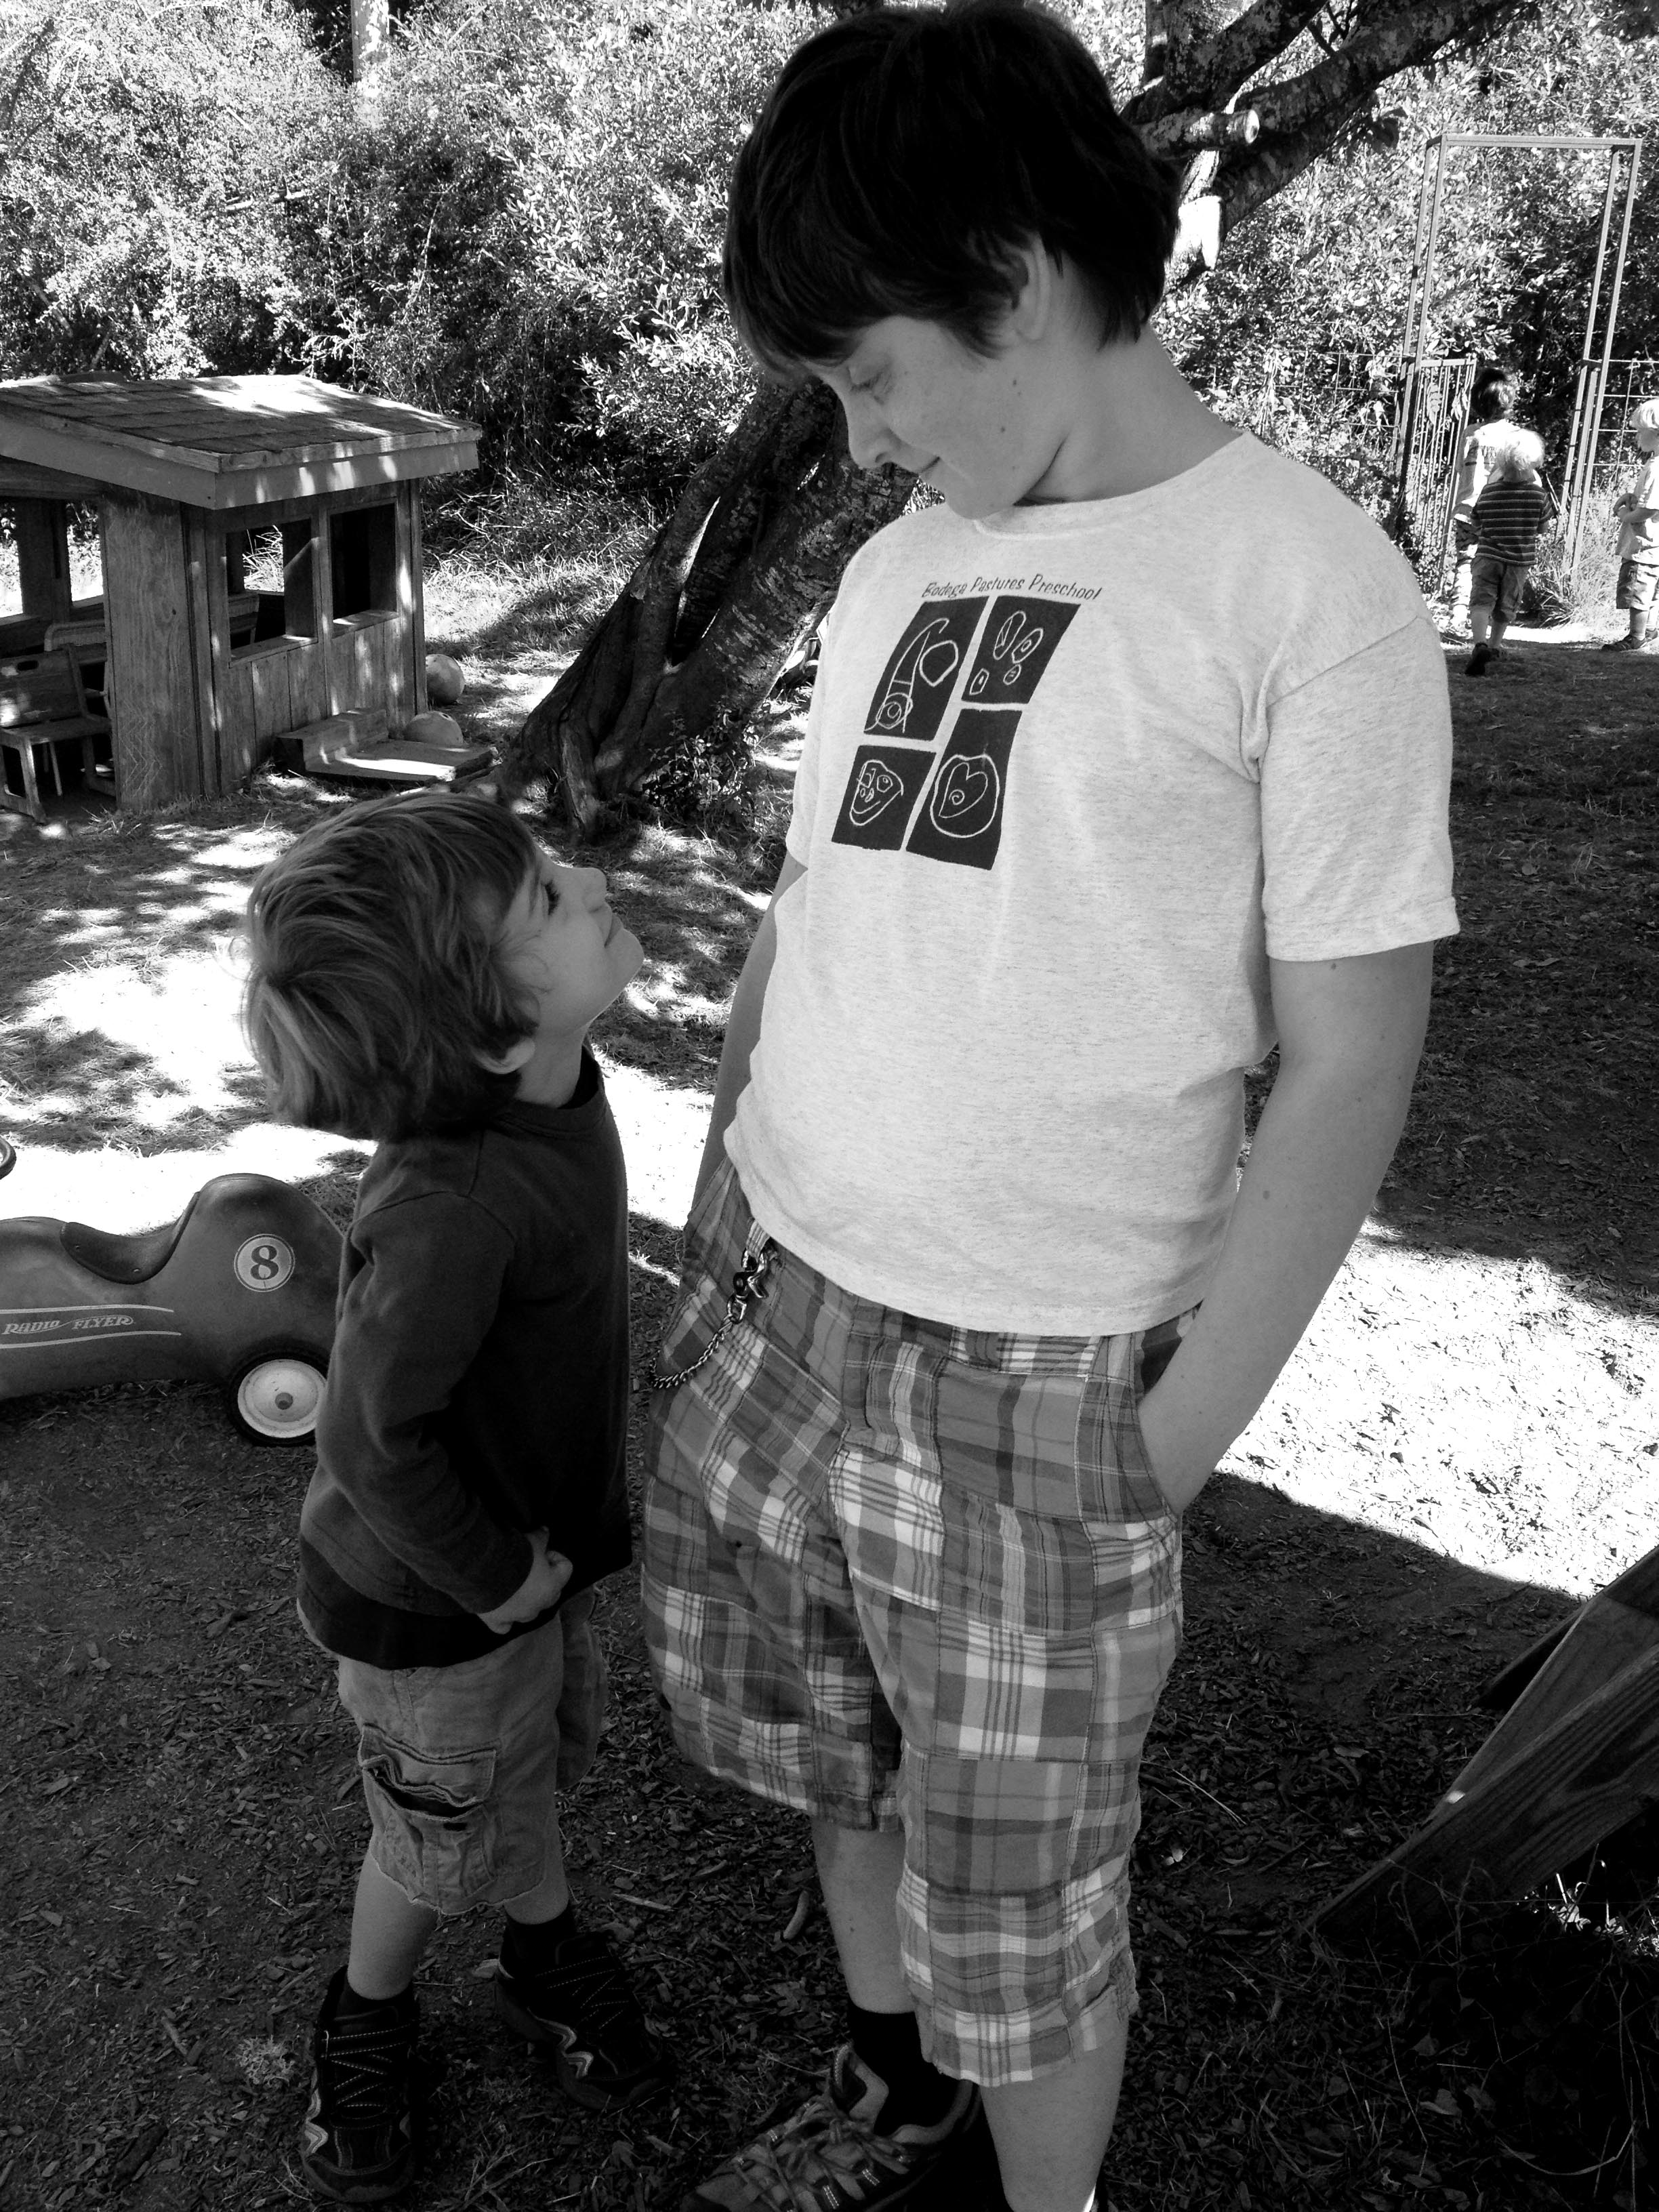 with rowan at pastures b and w.jpg